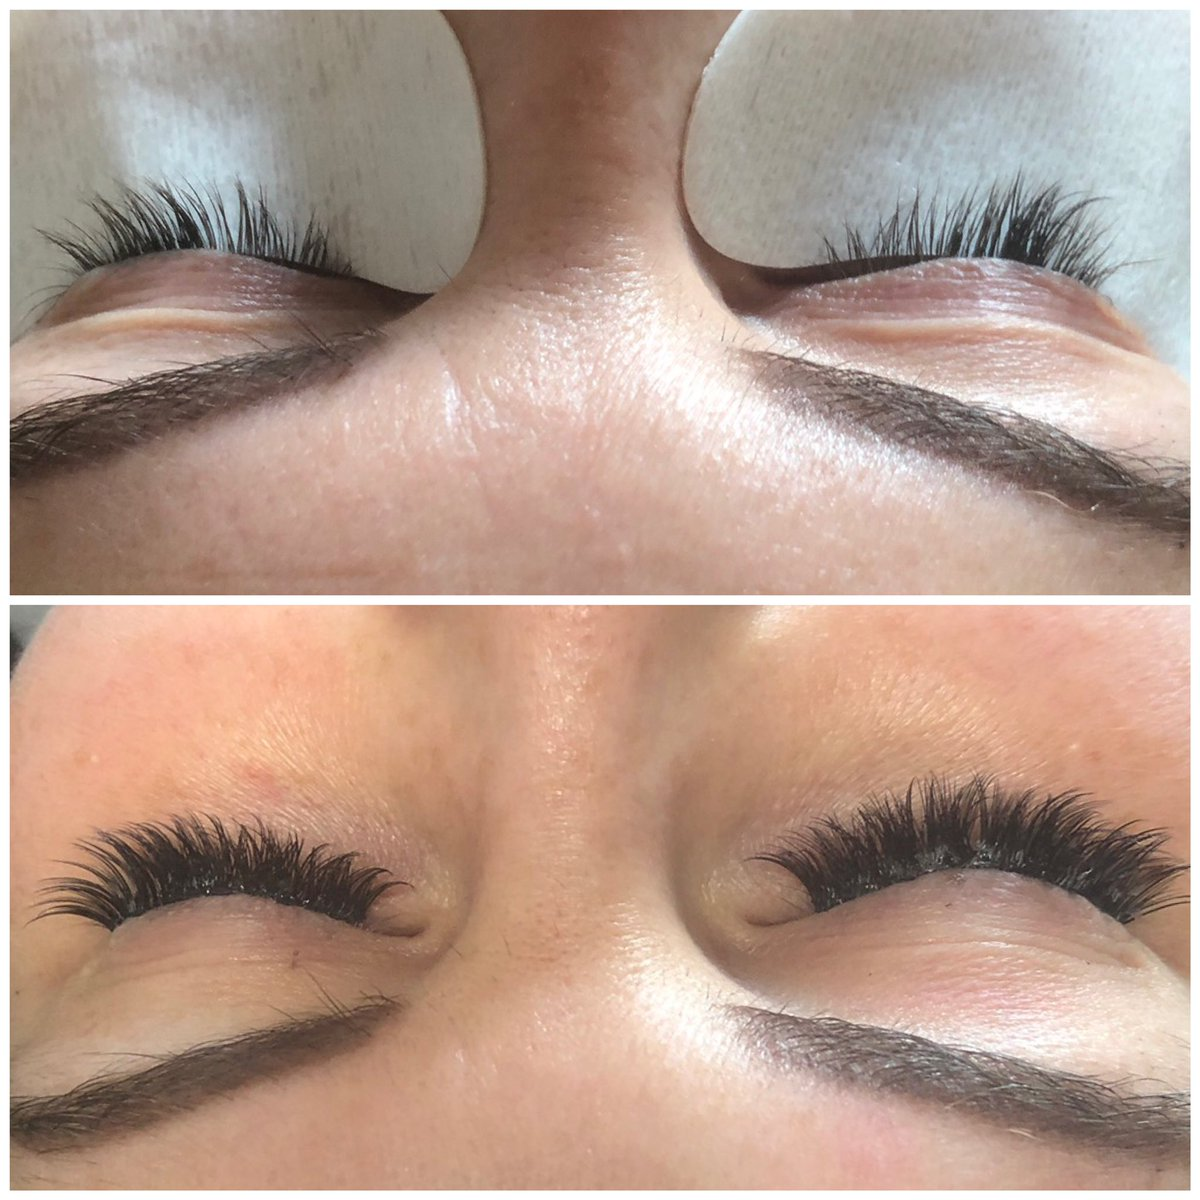 bf578d4f6c0 #beforeandafter #mink #clusterlashes #lashes #eyelashes #salonsystem  #manchester #cumbria @salonsystempic.twitter.com/4CvETAHRdQ